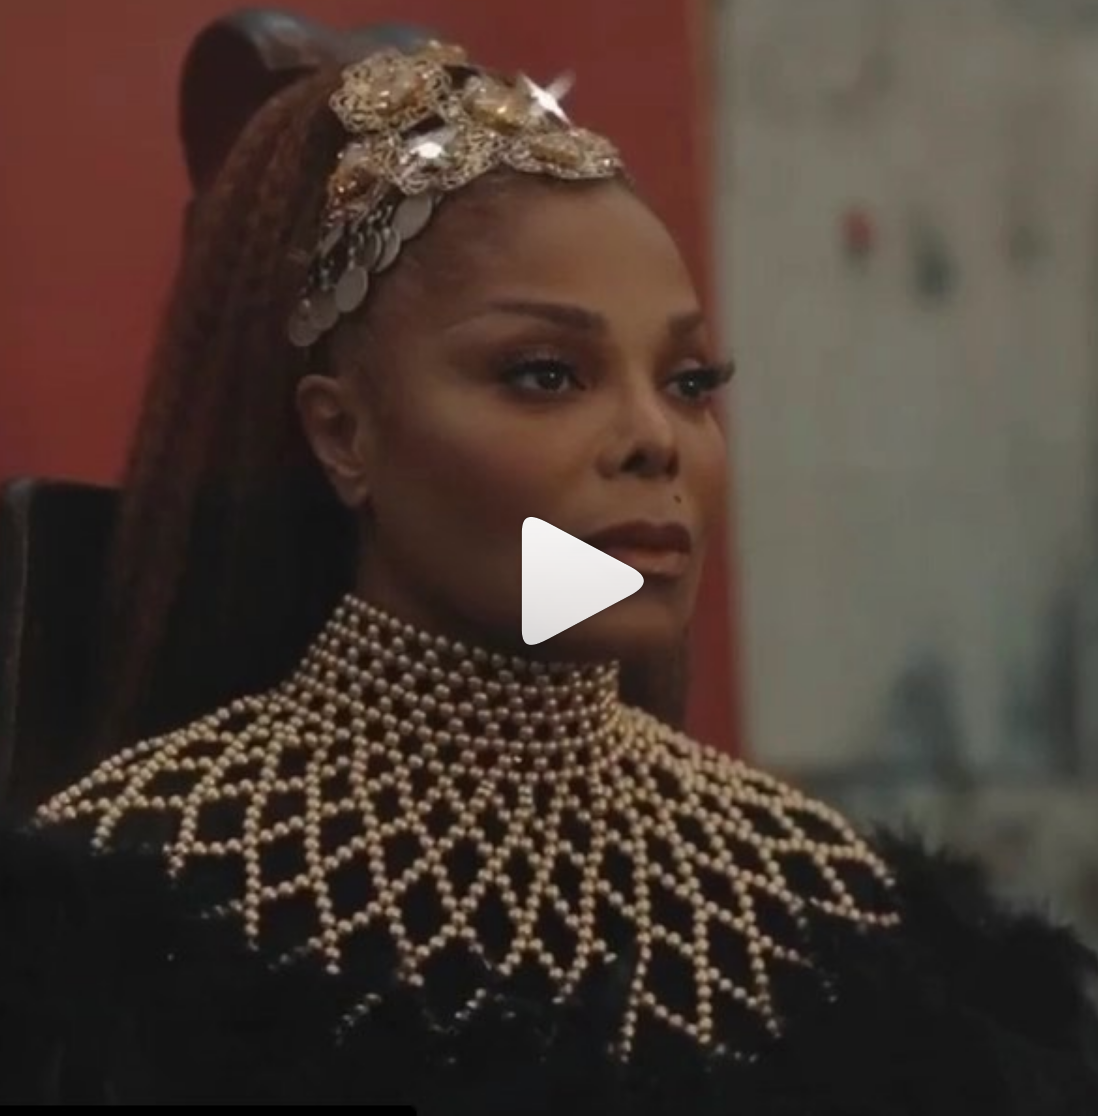 The absolute queen  @janetjackson  new parody video is out now !  #MadeForNow  With  @daddyyankee remade by  @Youtube  superstar  @blameitonkway  . Janet is wearing a gorgeous neck piece by our African designer from Ghana  @aphiasakyi (managed by  @elenanazaroff  ) Styled by  @otheezystyledit  fashion provided by  #ivanbittonstylehouse